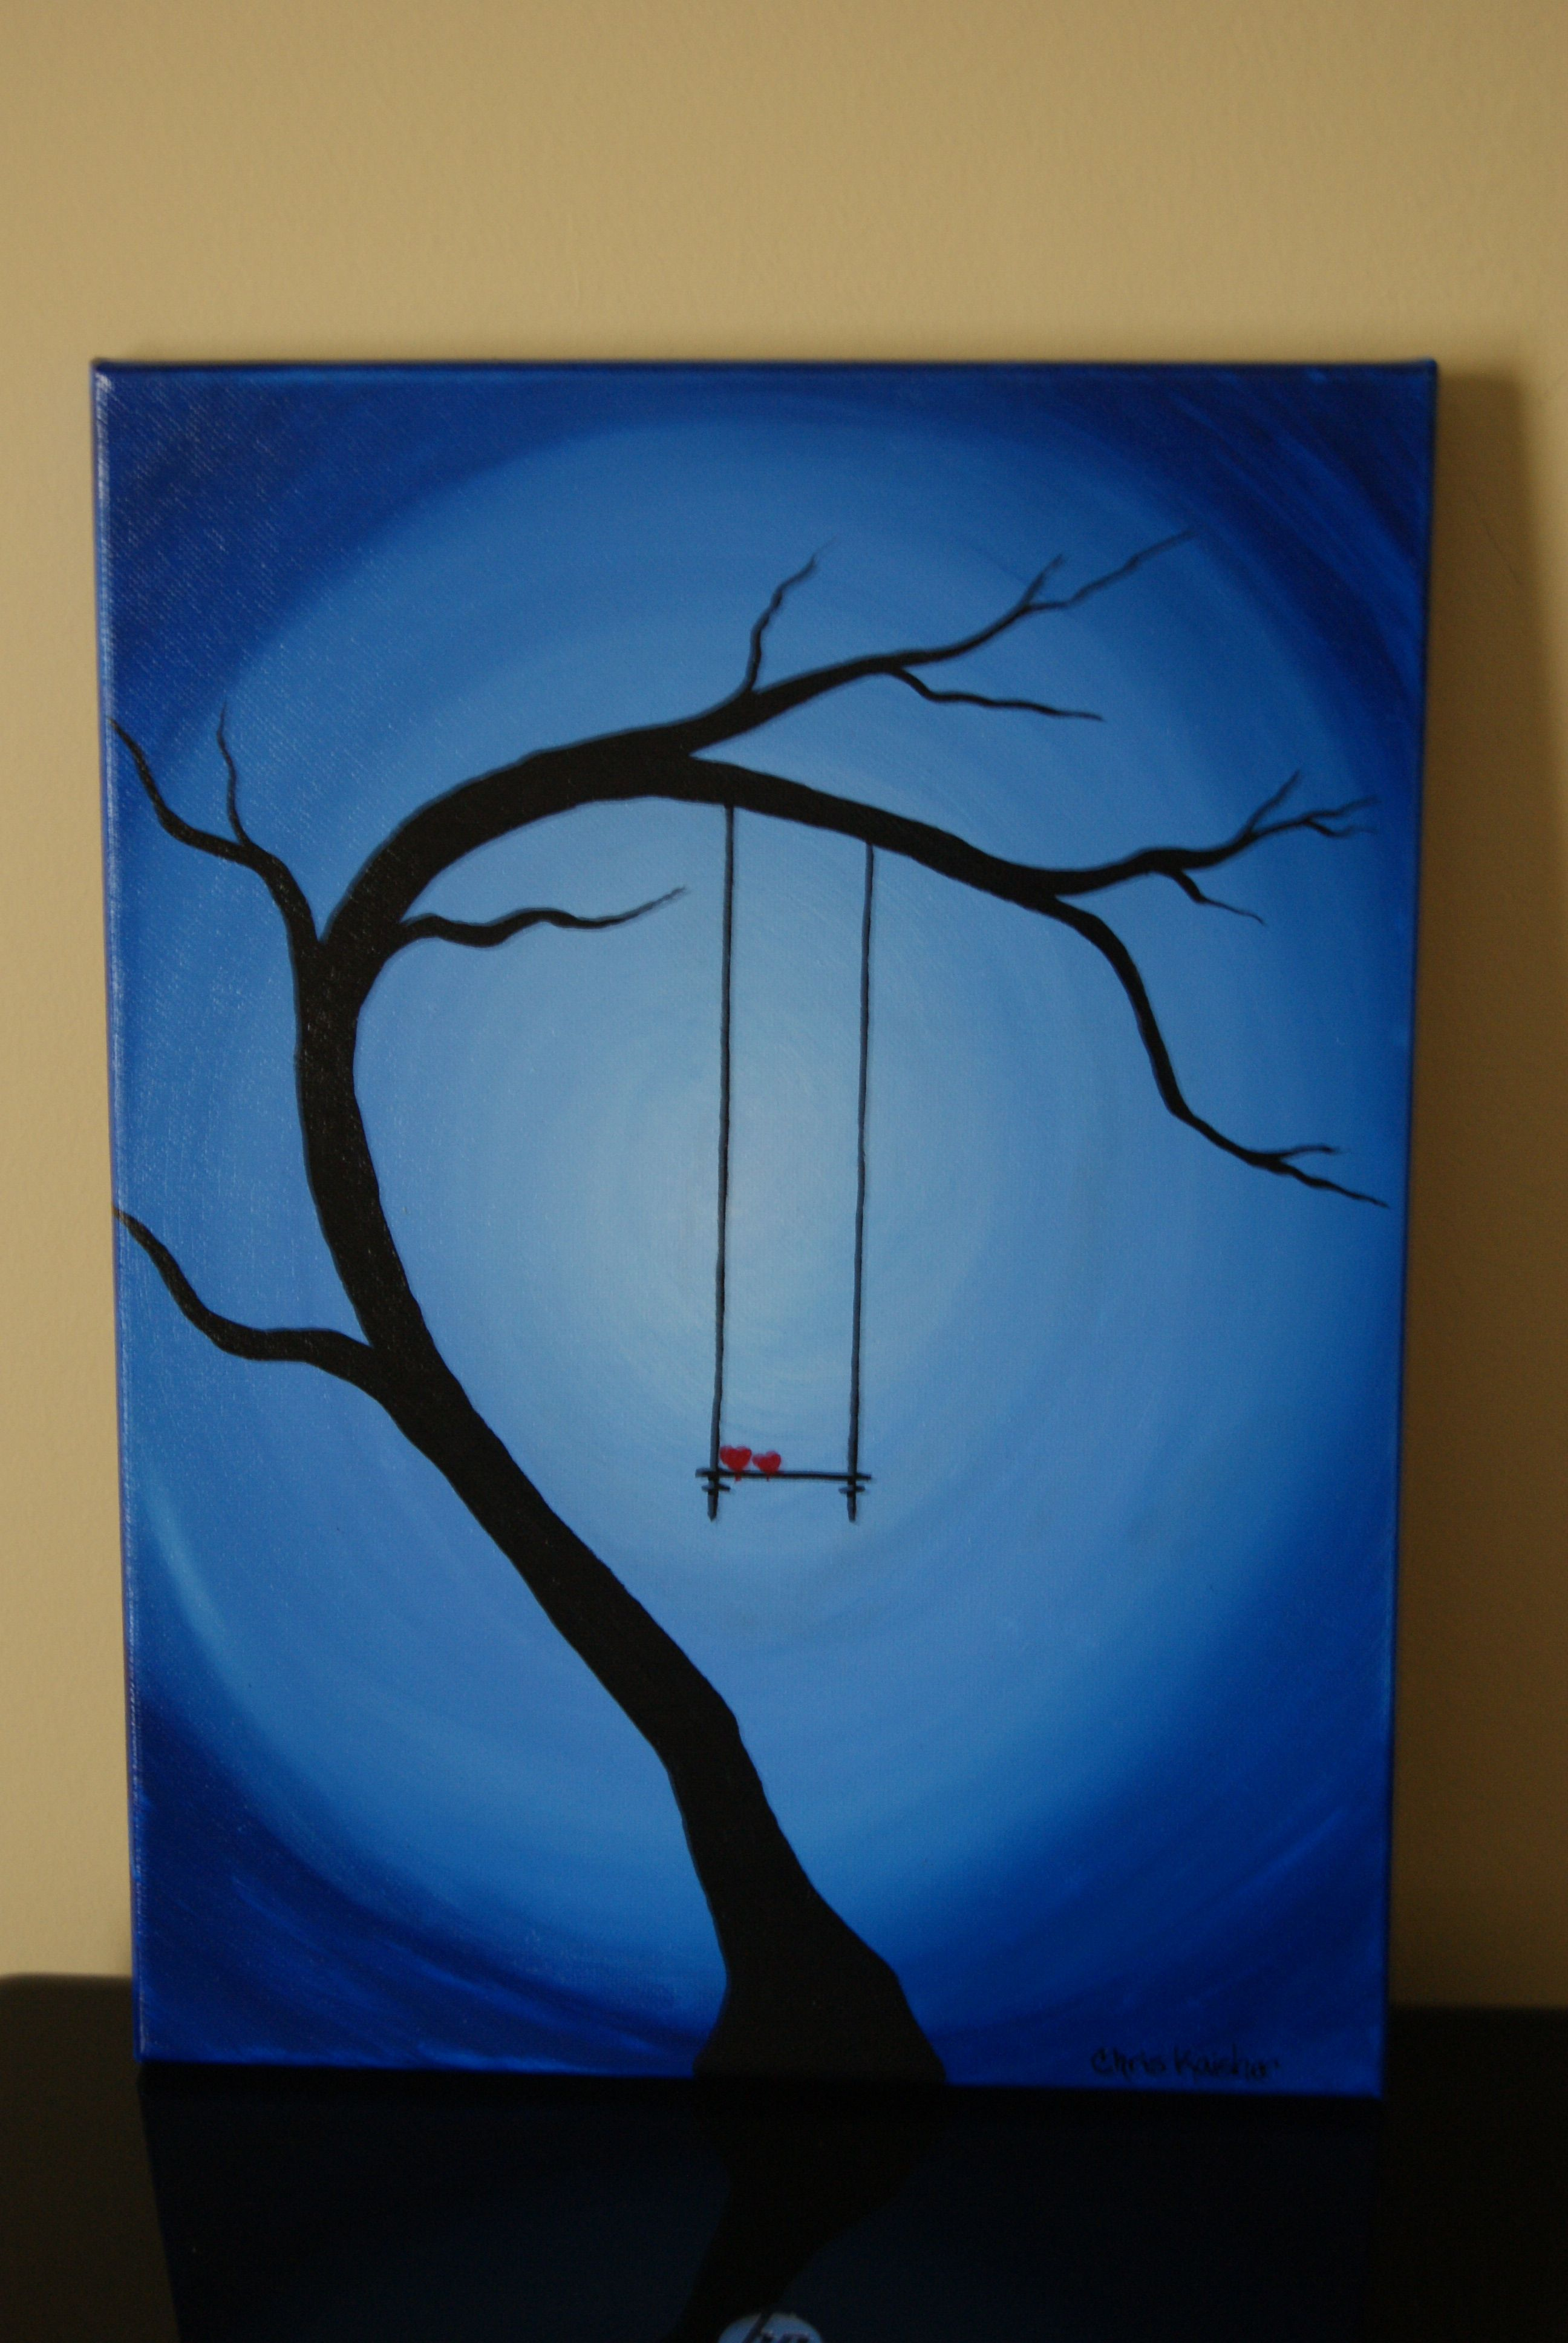 Efficient Artist Hand-painted Best Child Birthday Gift The Girl Playing Swing Oil Painting On Canvas Swing Girl Painting For Home Decor Home & Garden